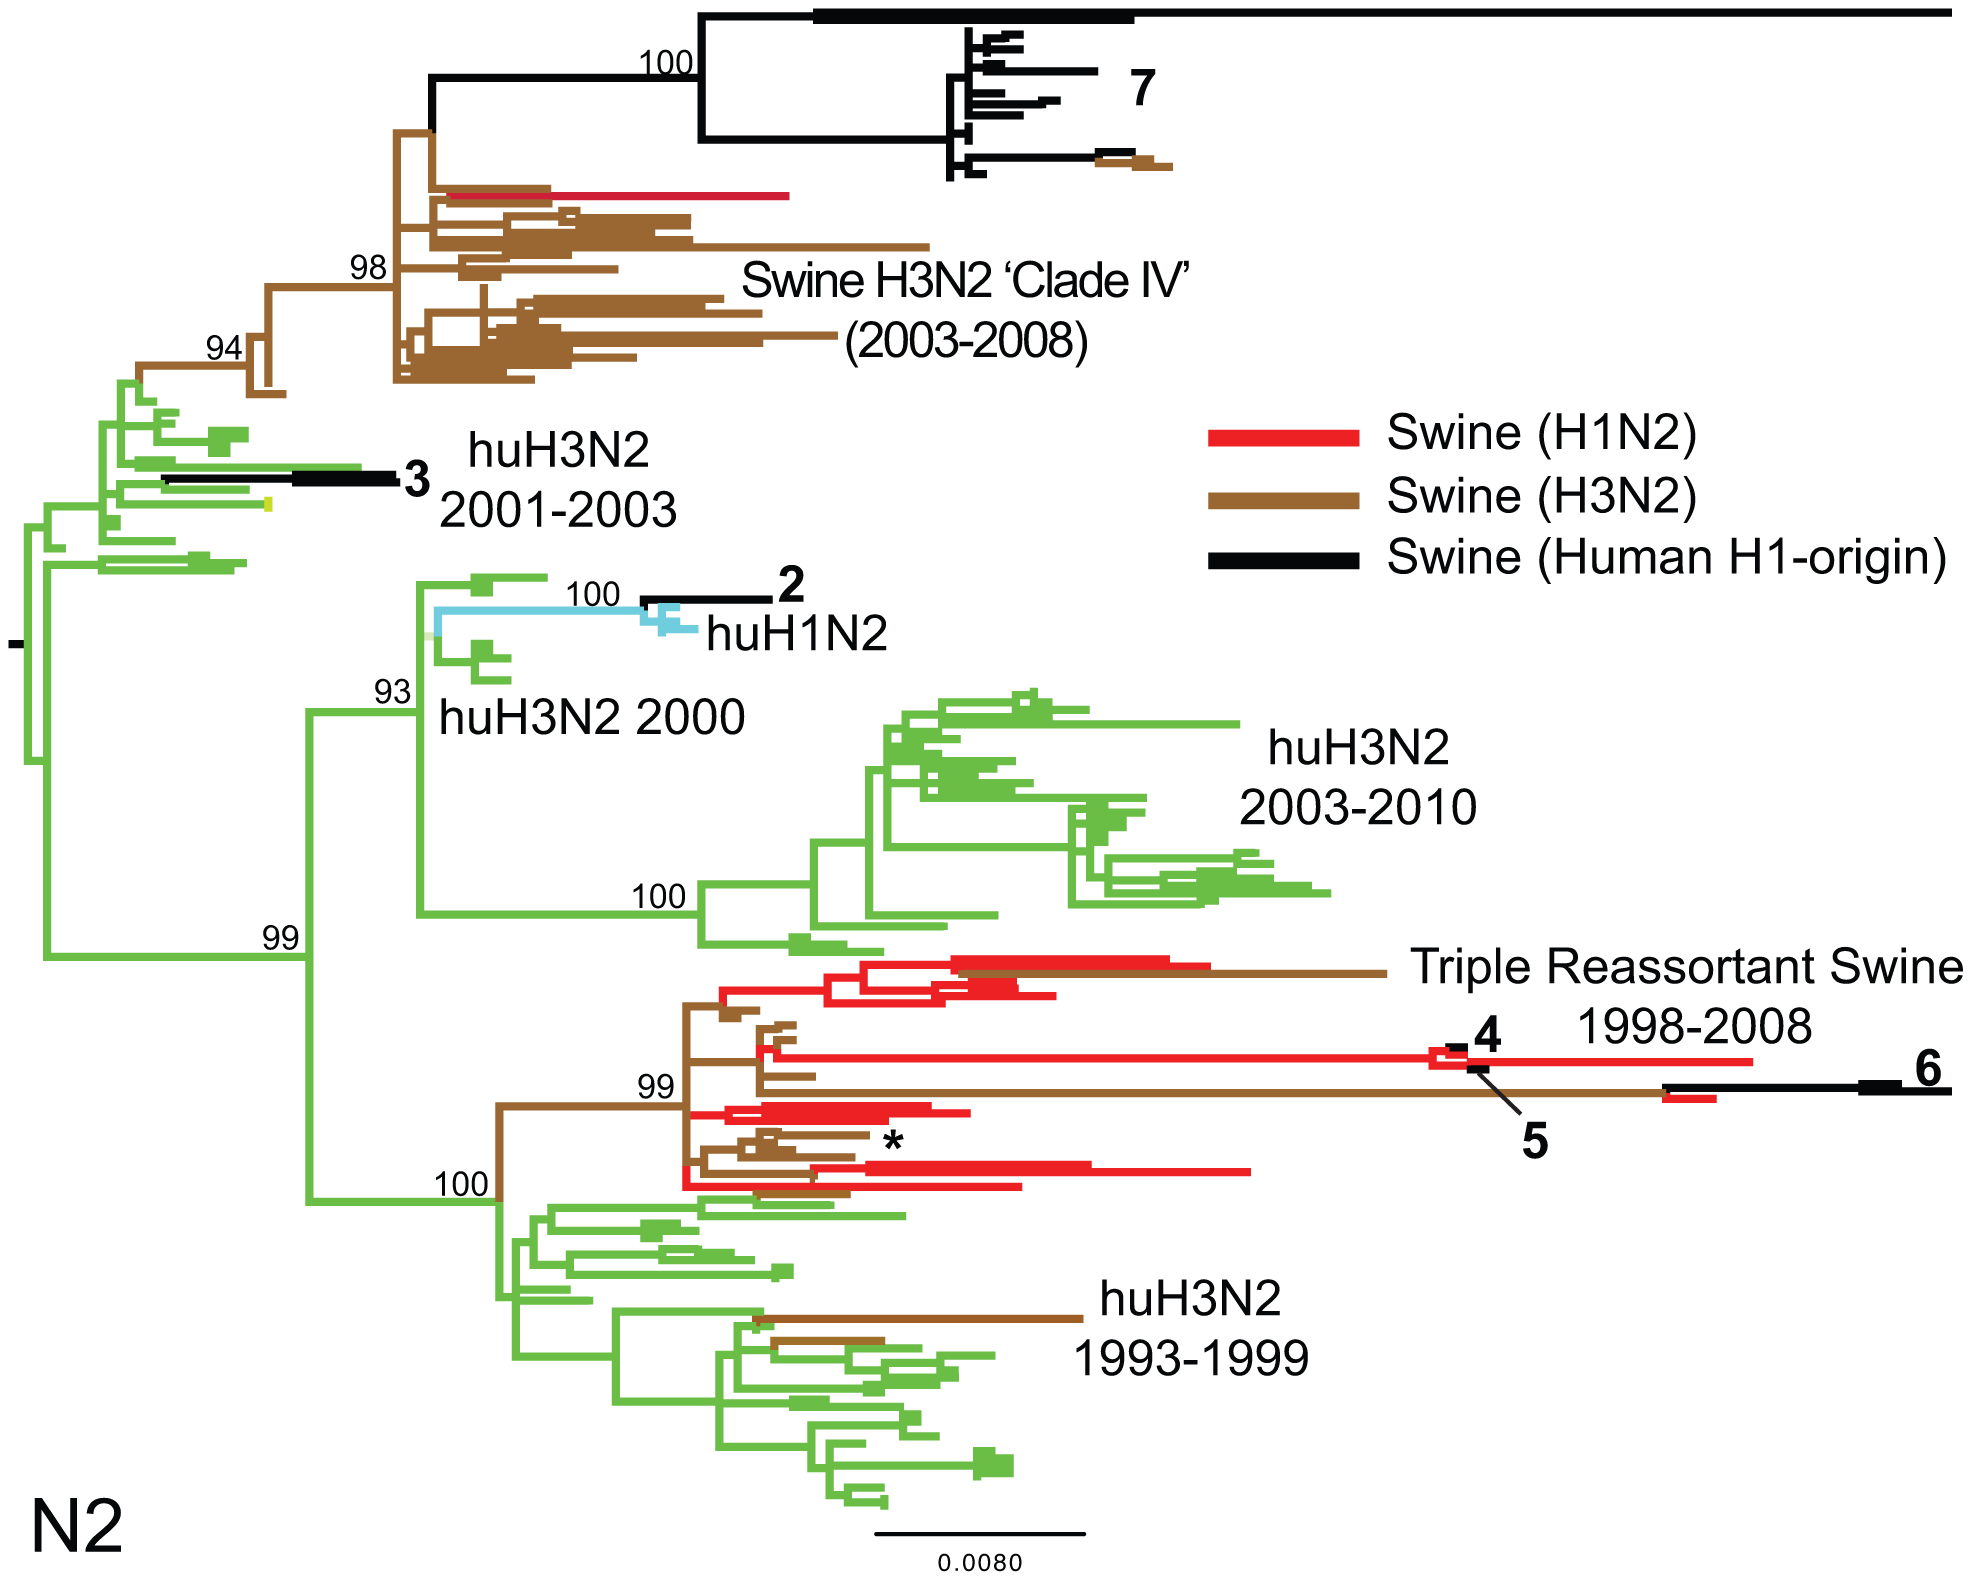 Phylogenetic relationships of the NA (N2) segment.